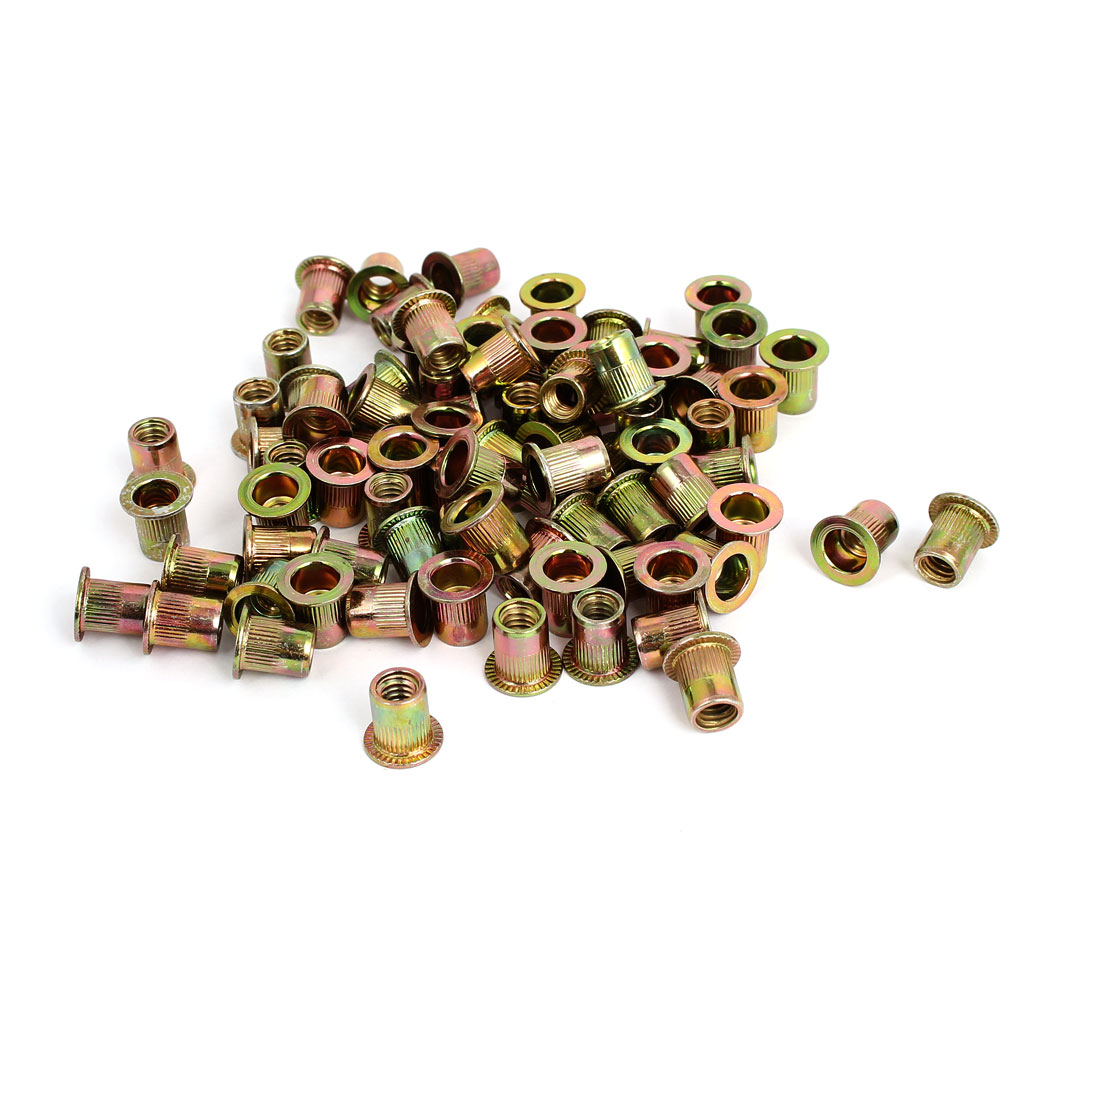 "1/4"" Thread 12mm Long Rivet Nut Insert Nutsert 100pcs"